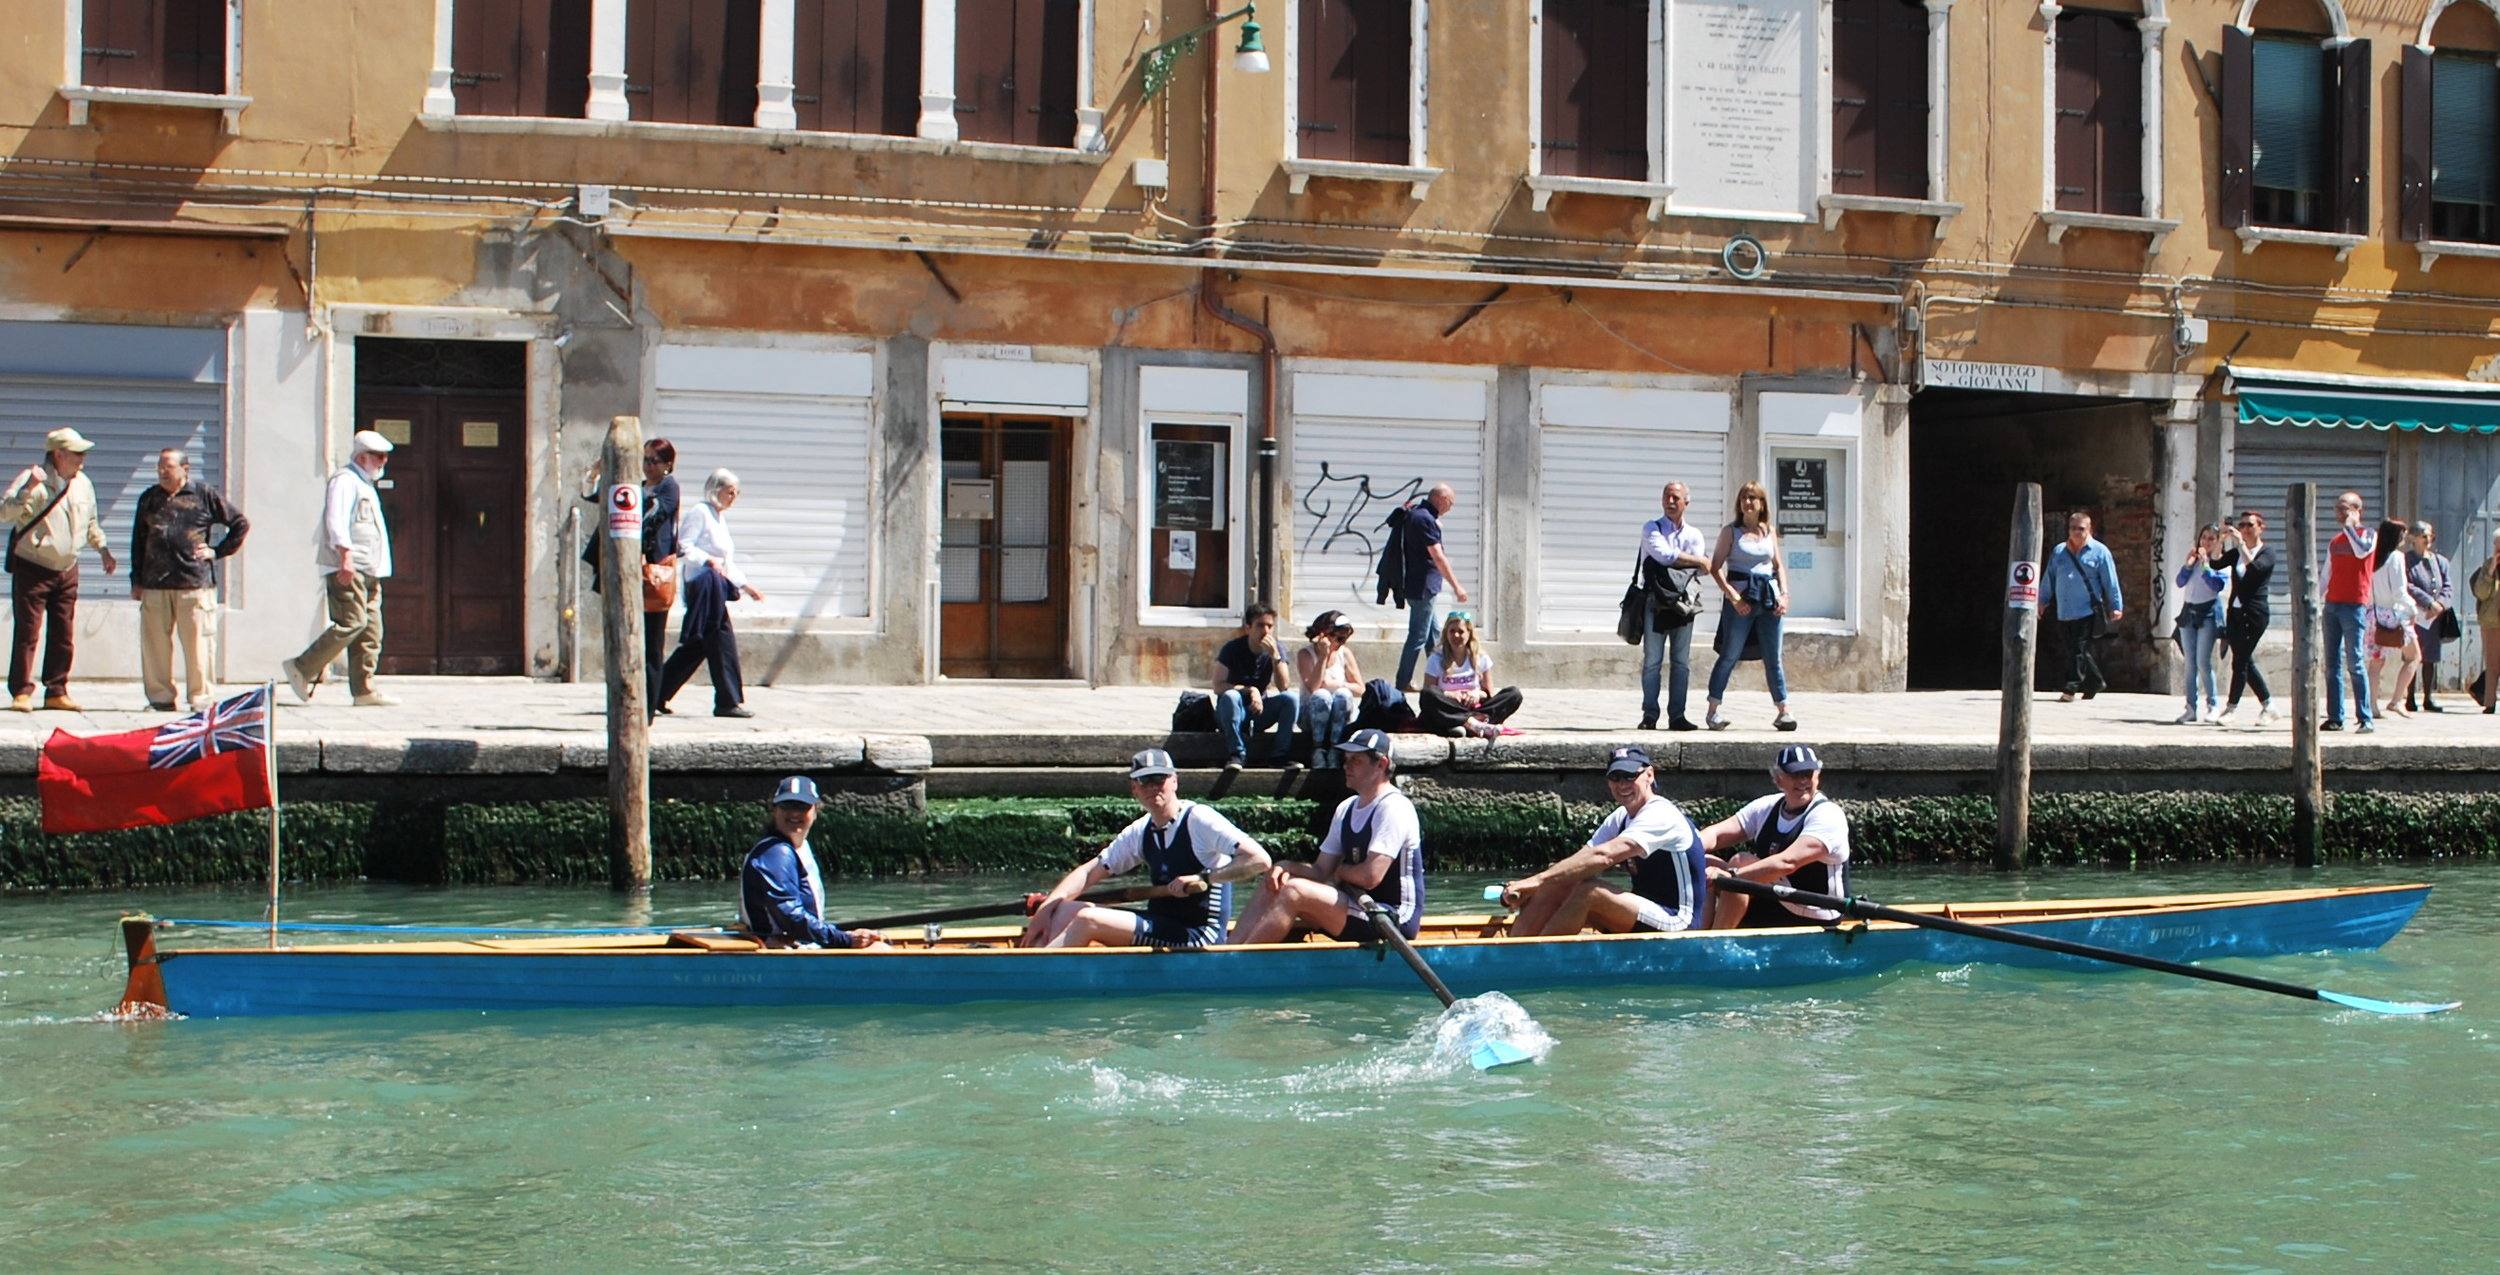 London_Rowing_Club_Vogalonga_Venice.jpg